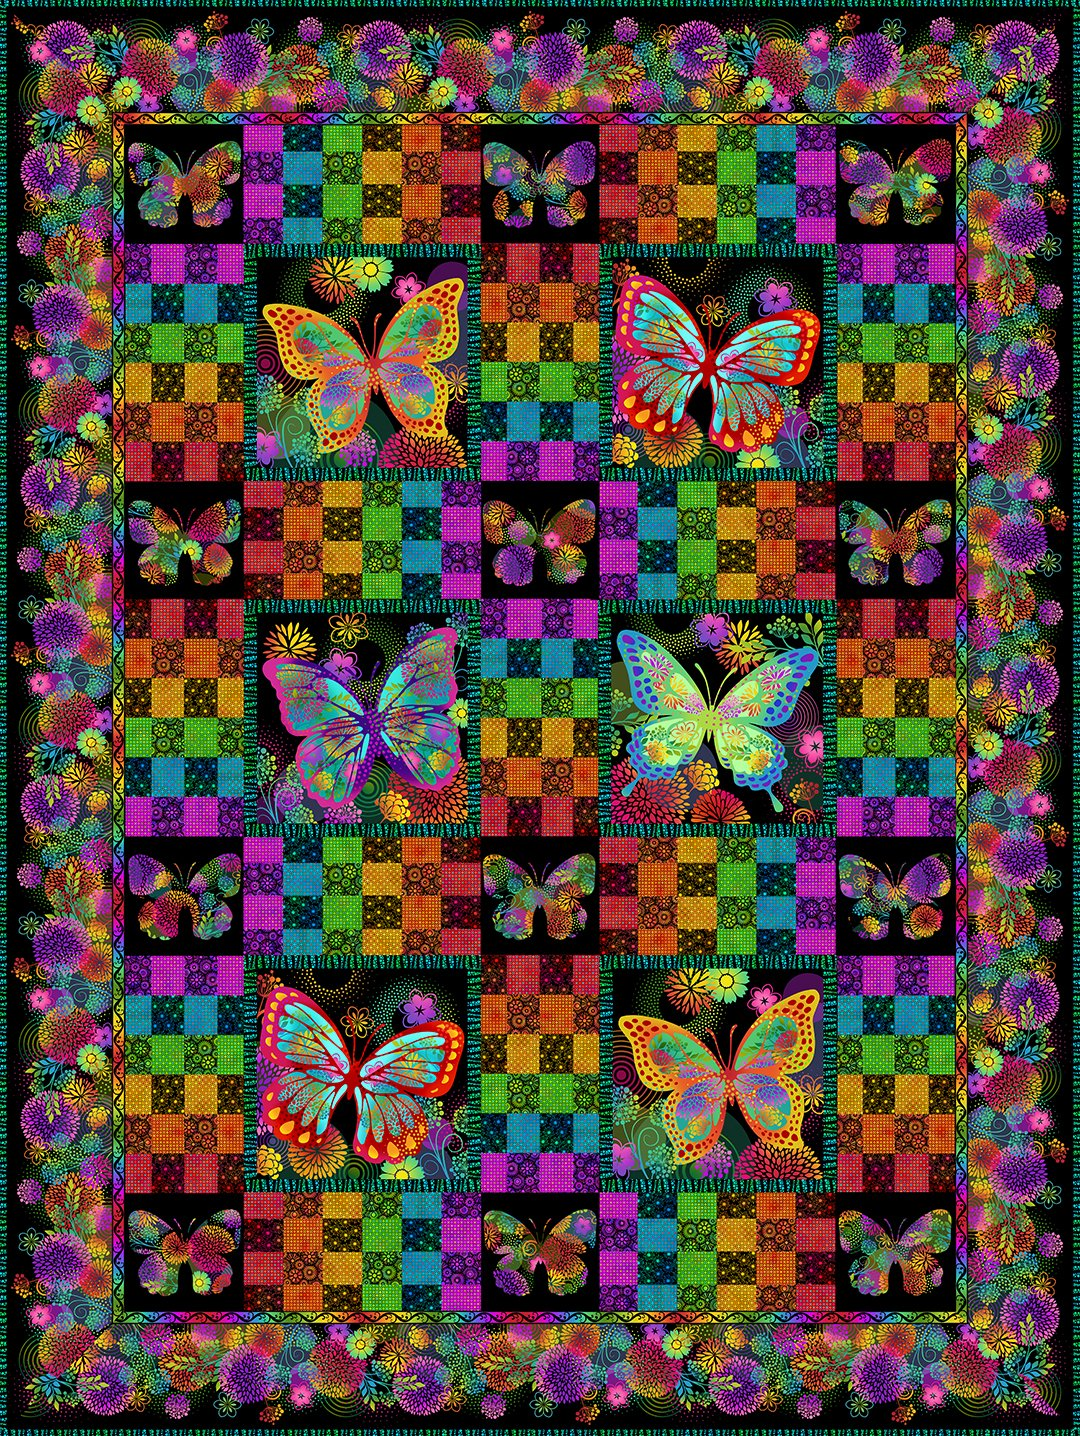 Unusual Garden II Butterfly Quilt Pattern